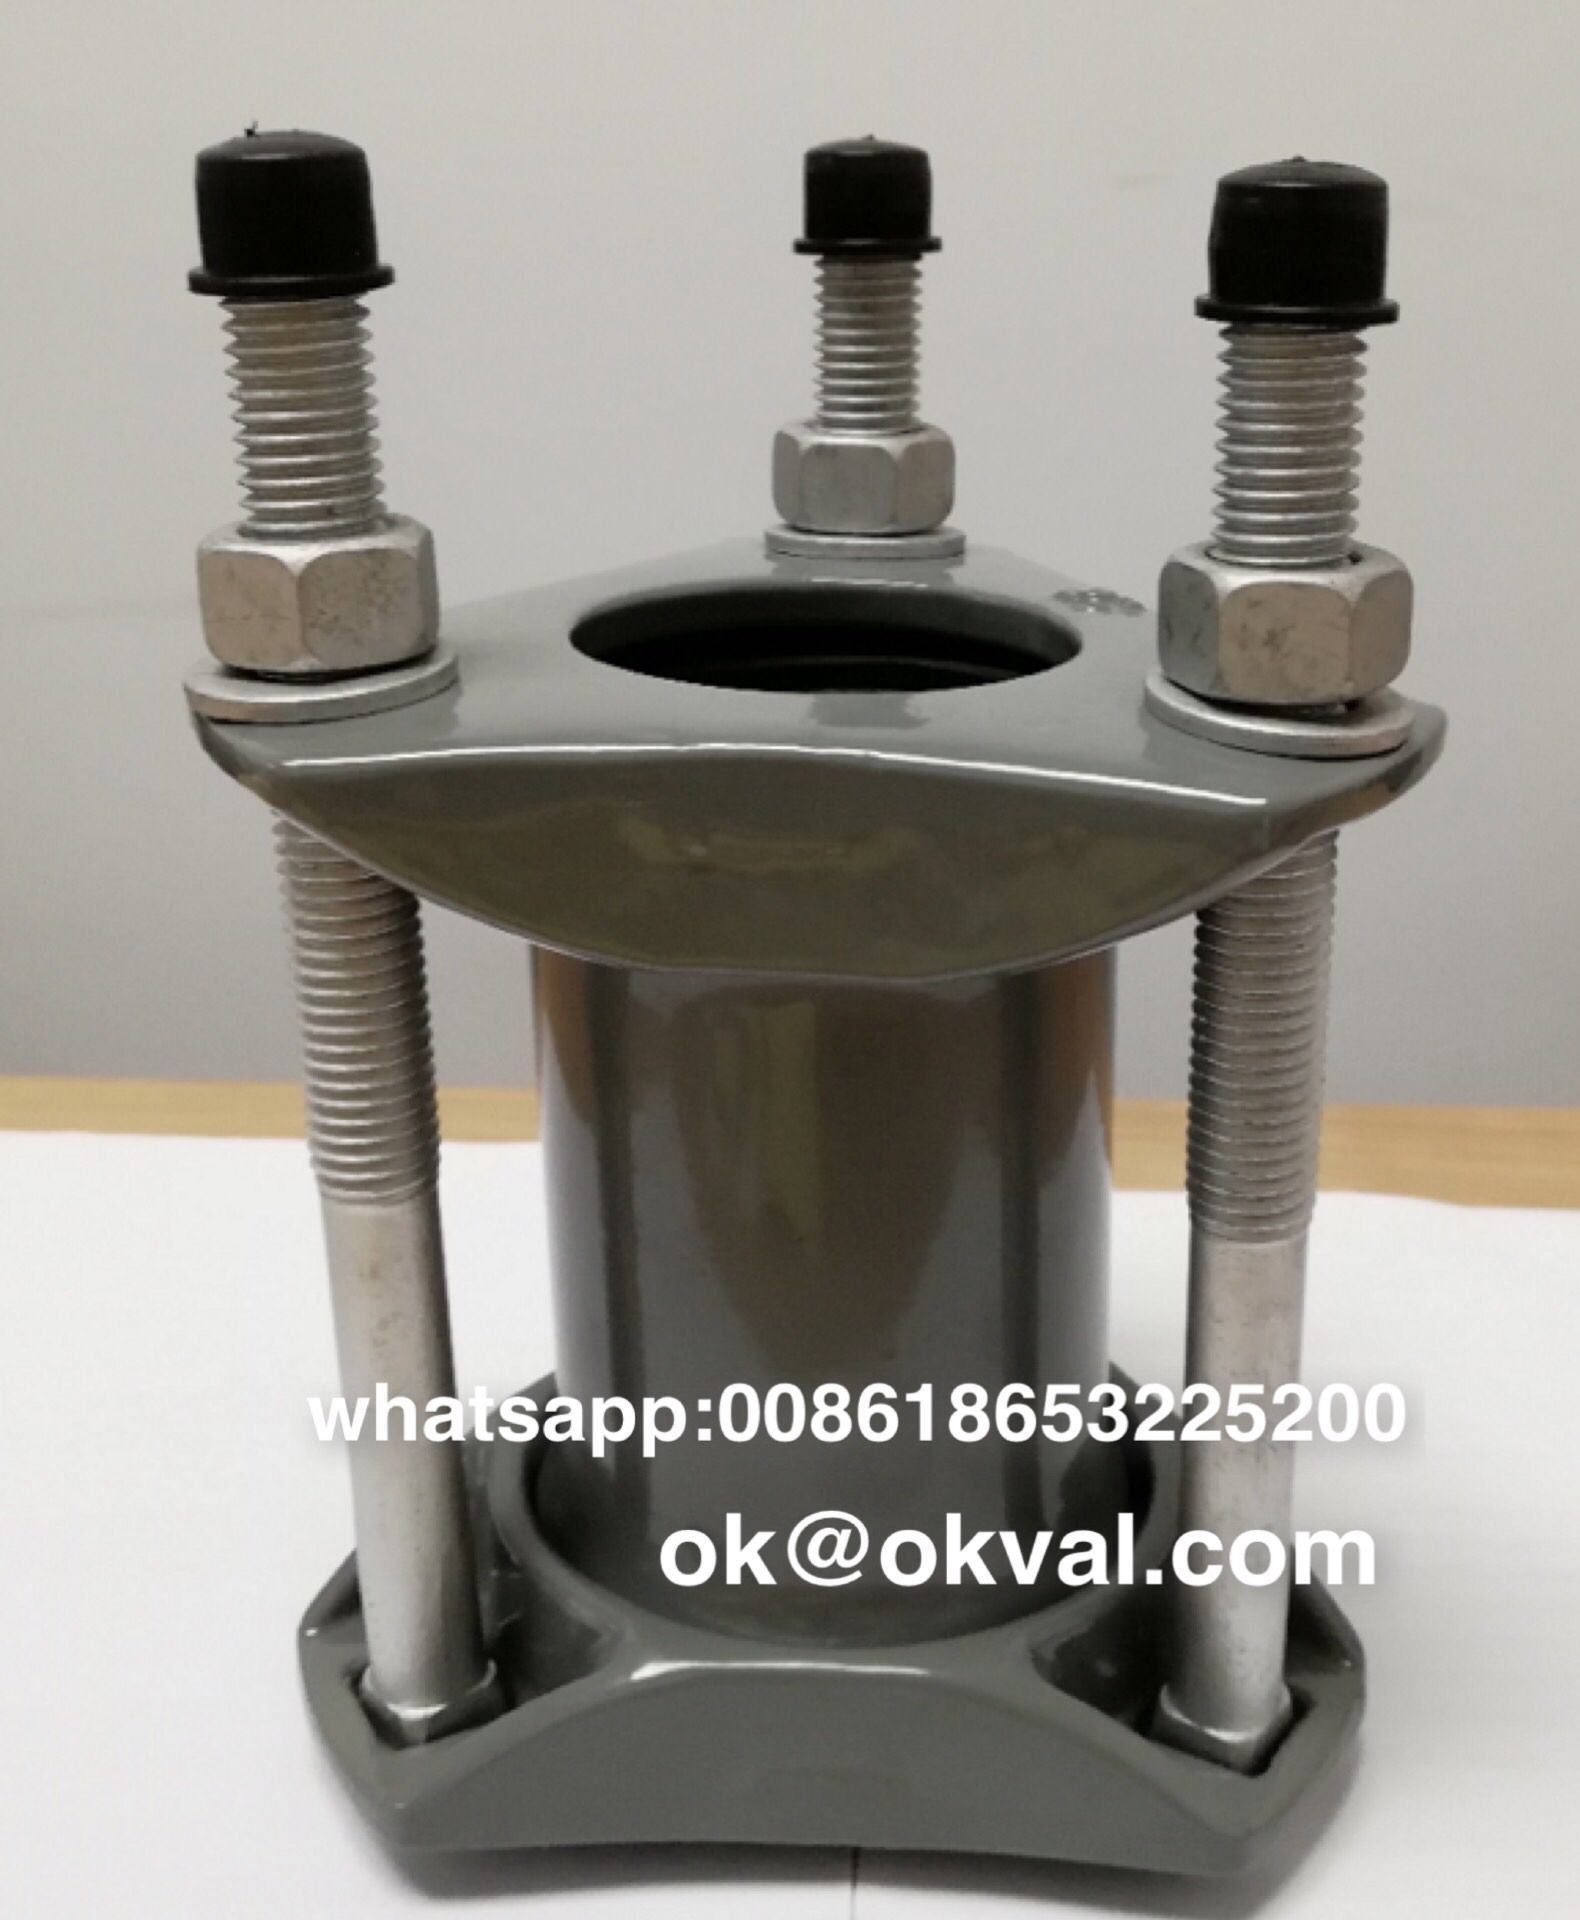 Okval Bolt Sleeve Coupling Dresser Couplings Sizes From 1 2 Through 12 Available In Steel Pipe